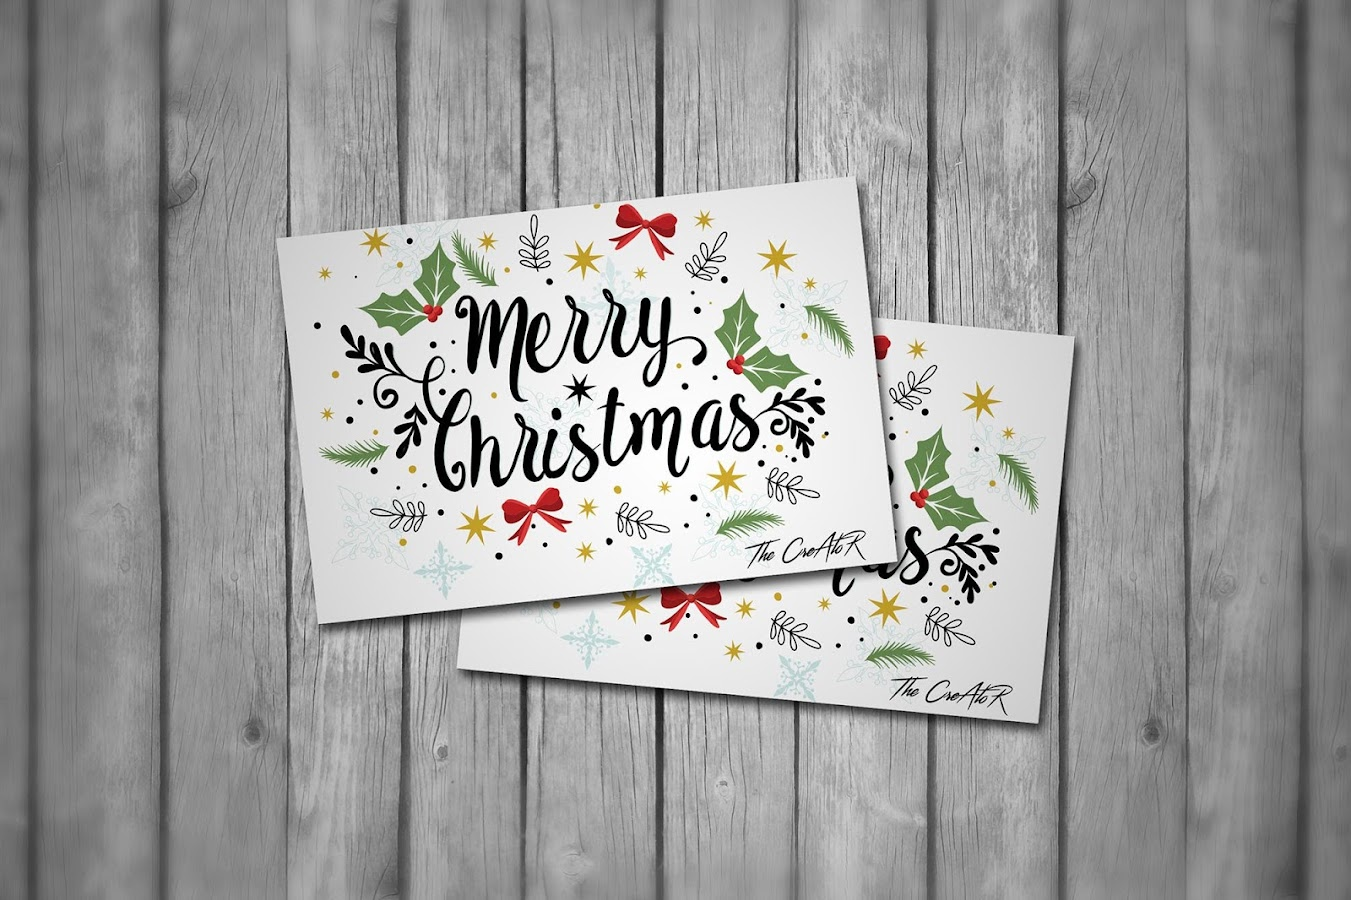 Magic christmas greeting card android apps on google play magic christmas greeting card screenshot kristyandbryce Images